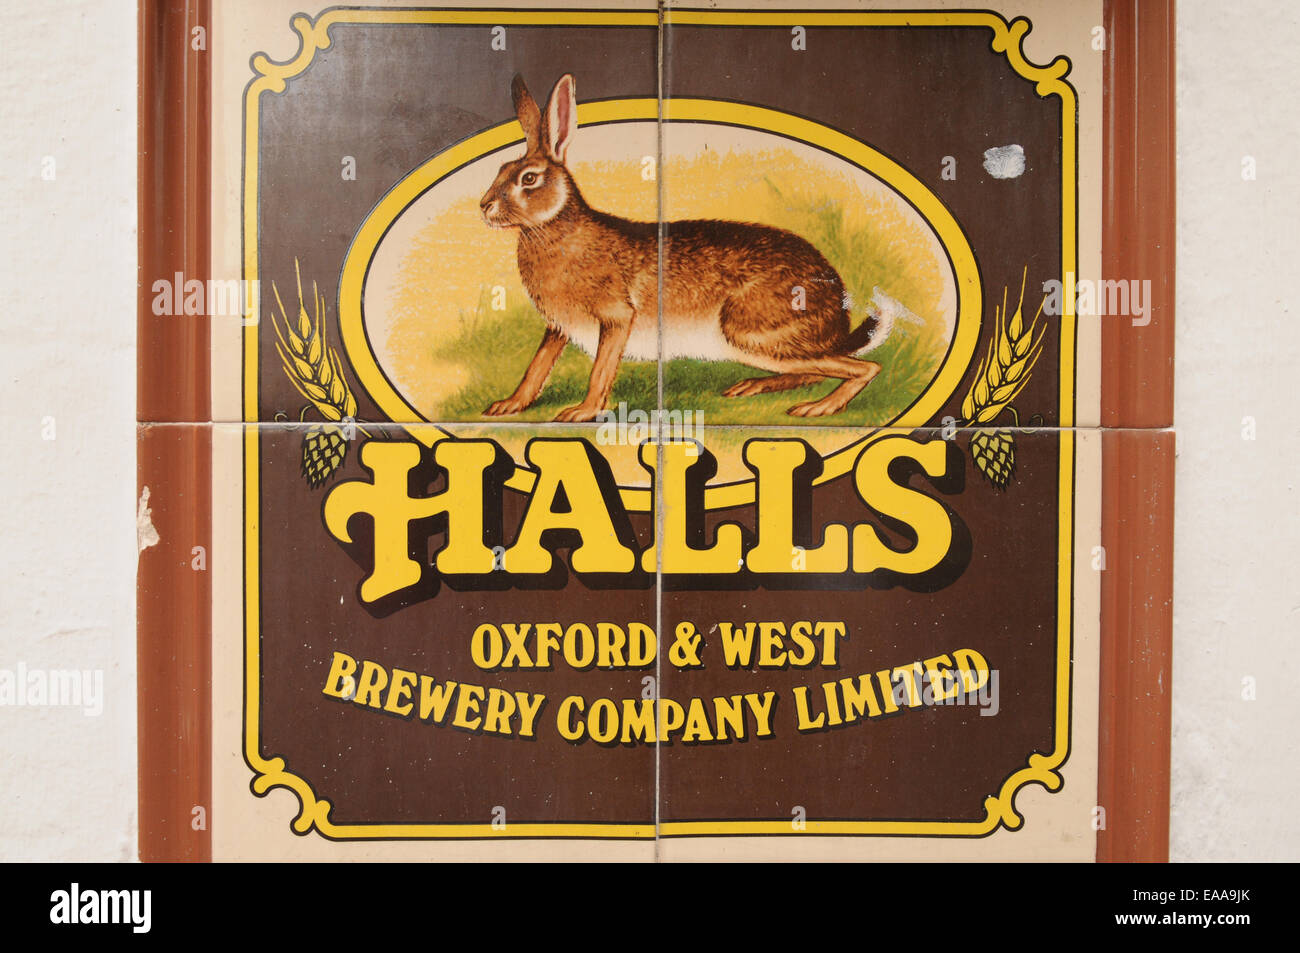 Halls Brewery Sign - Stock Image